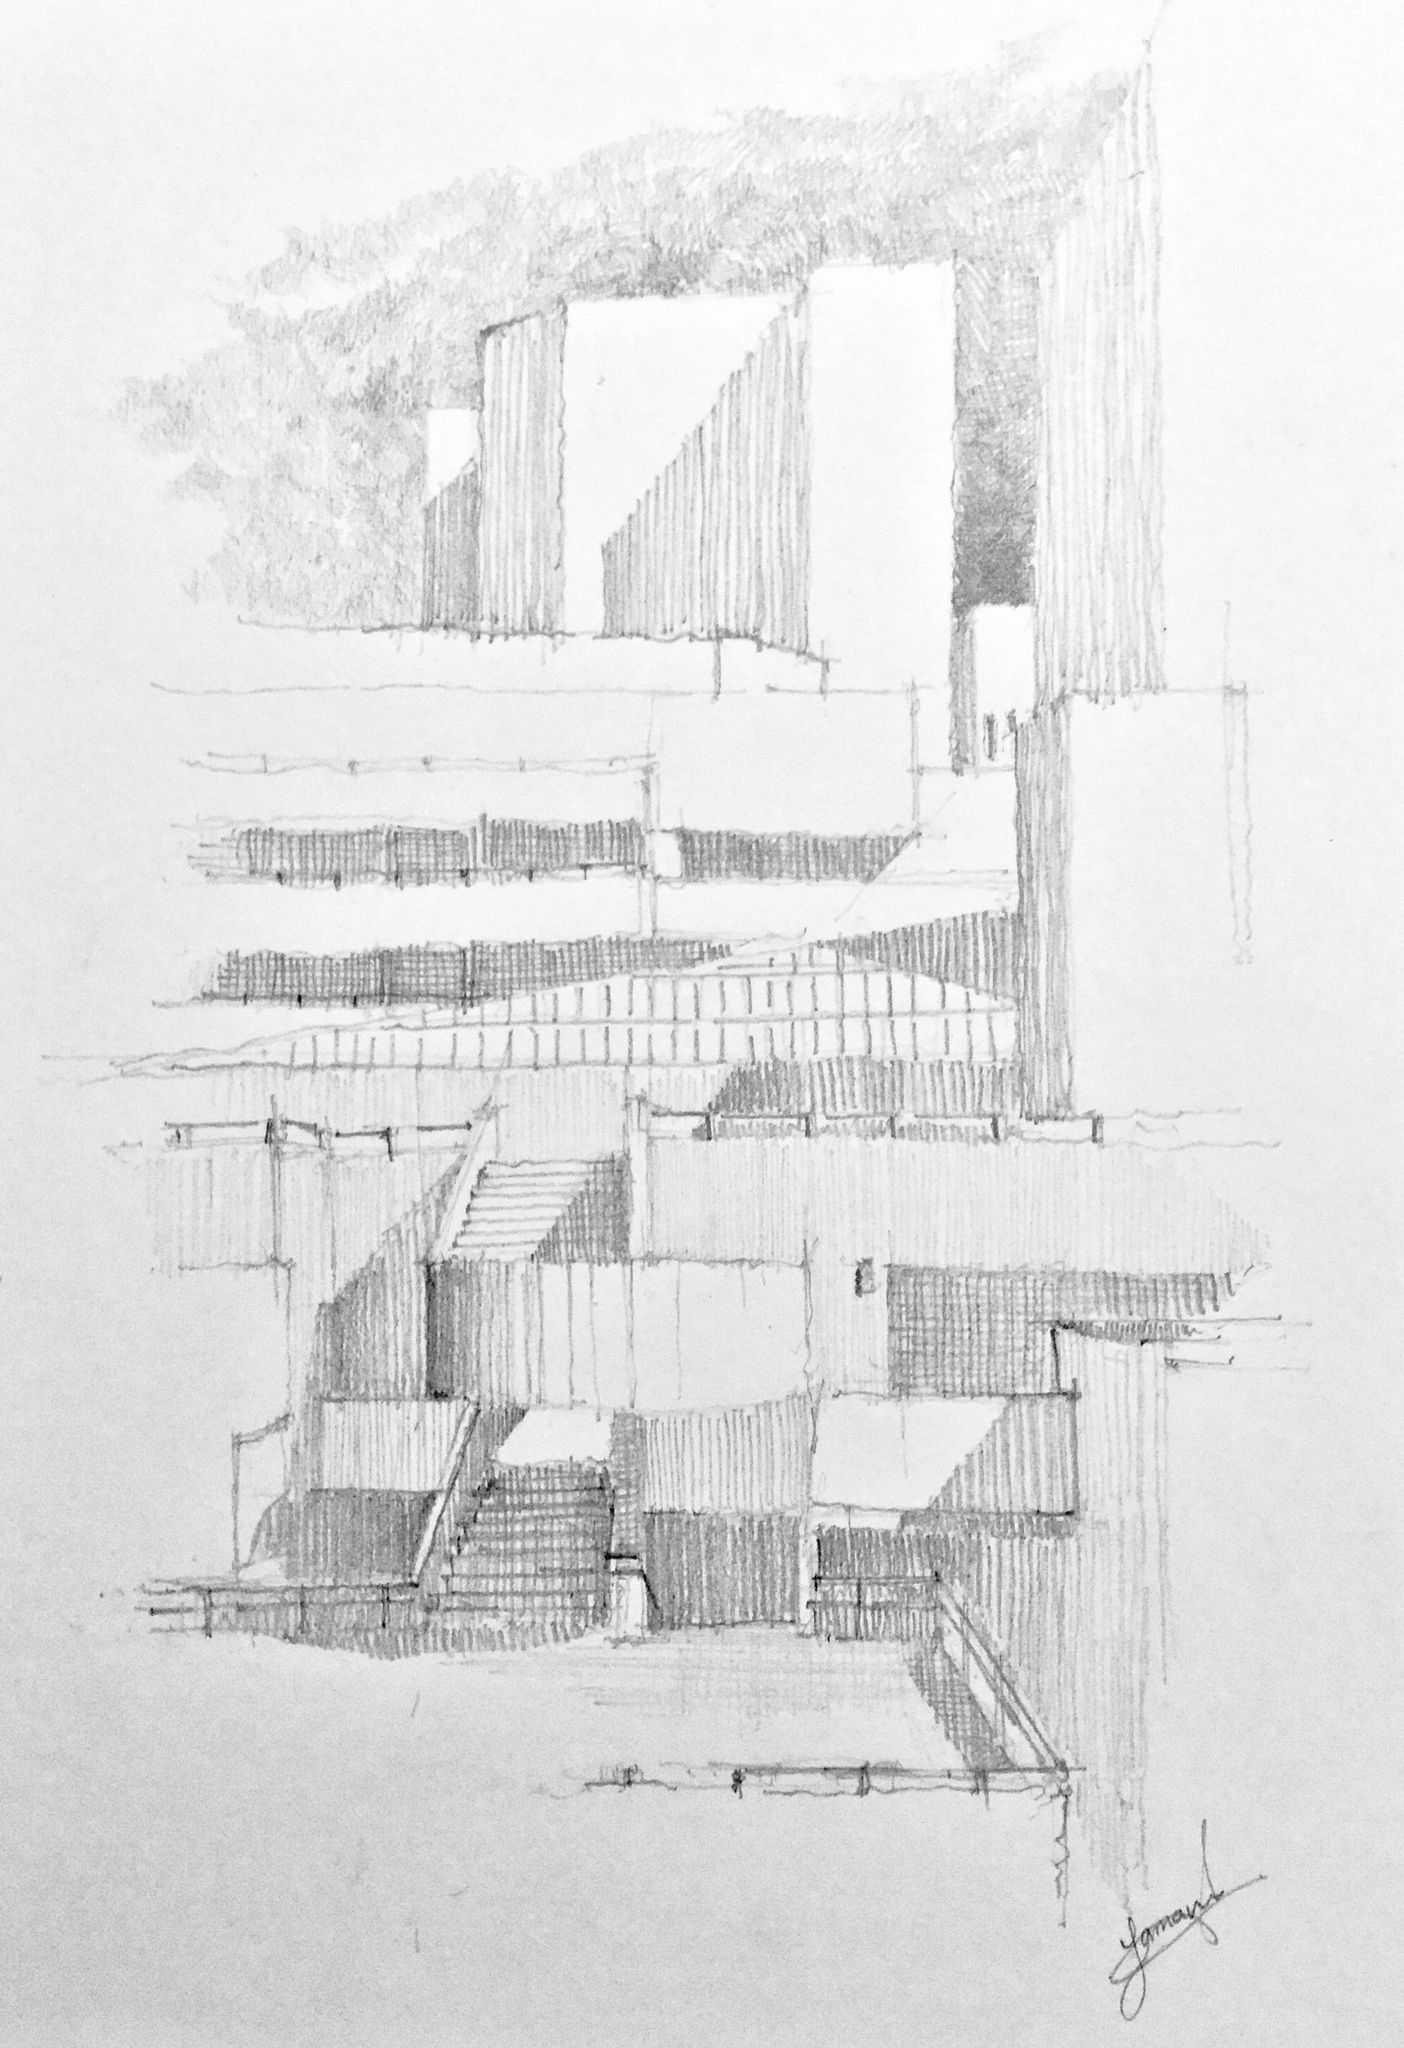 Royal national theatre london united kingdom pencil drawing using h 2b